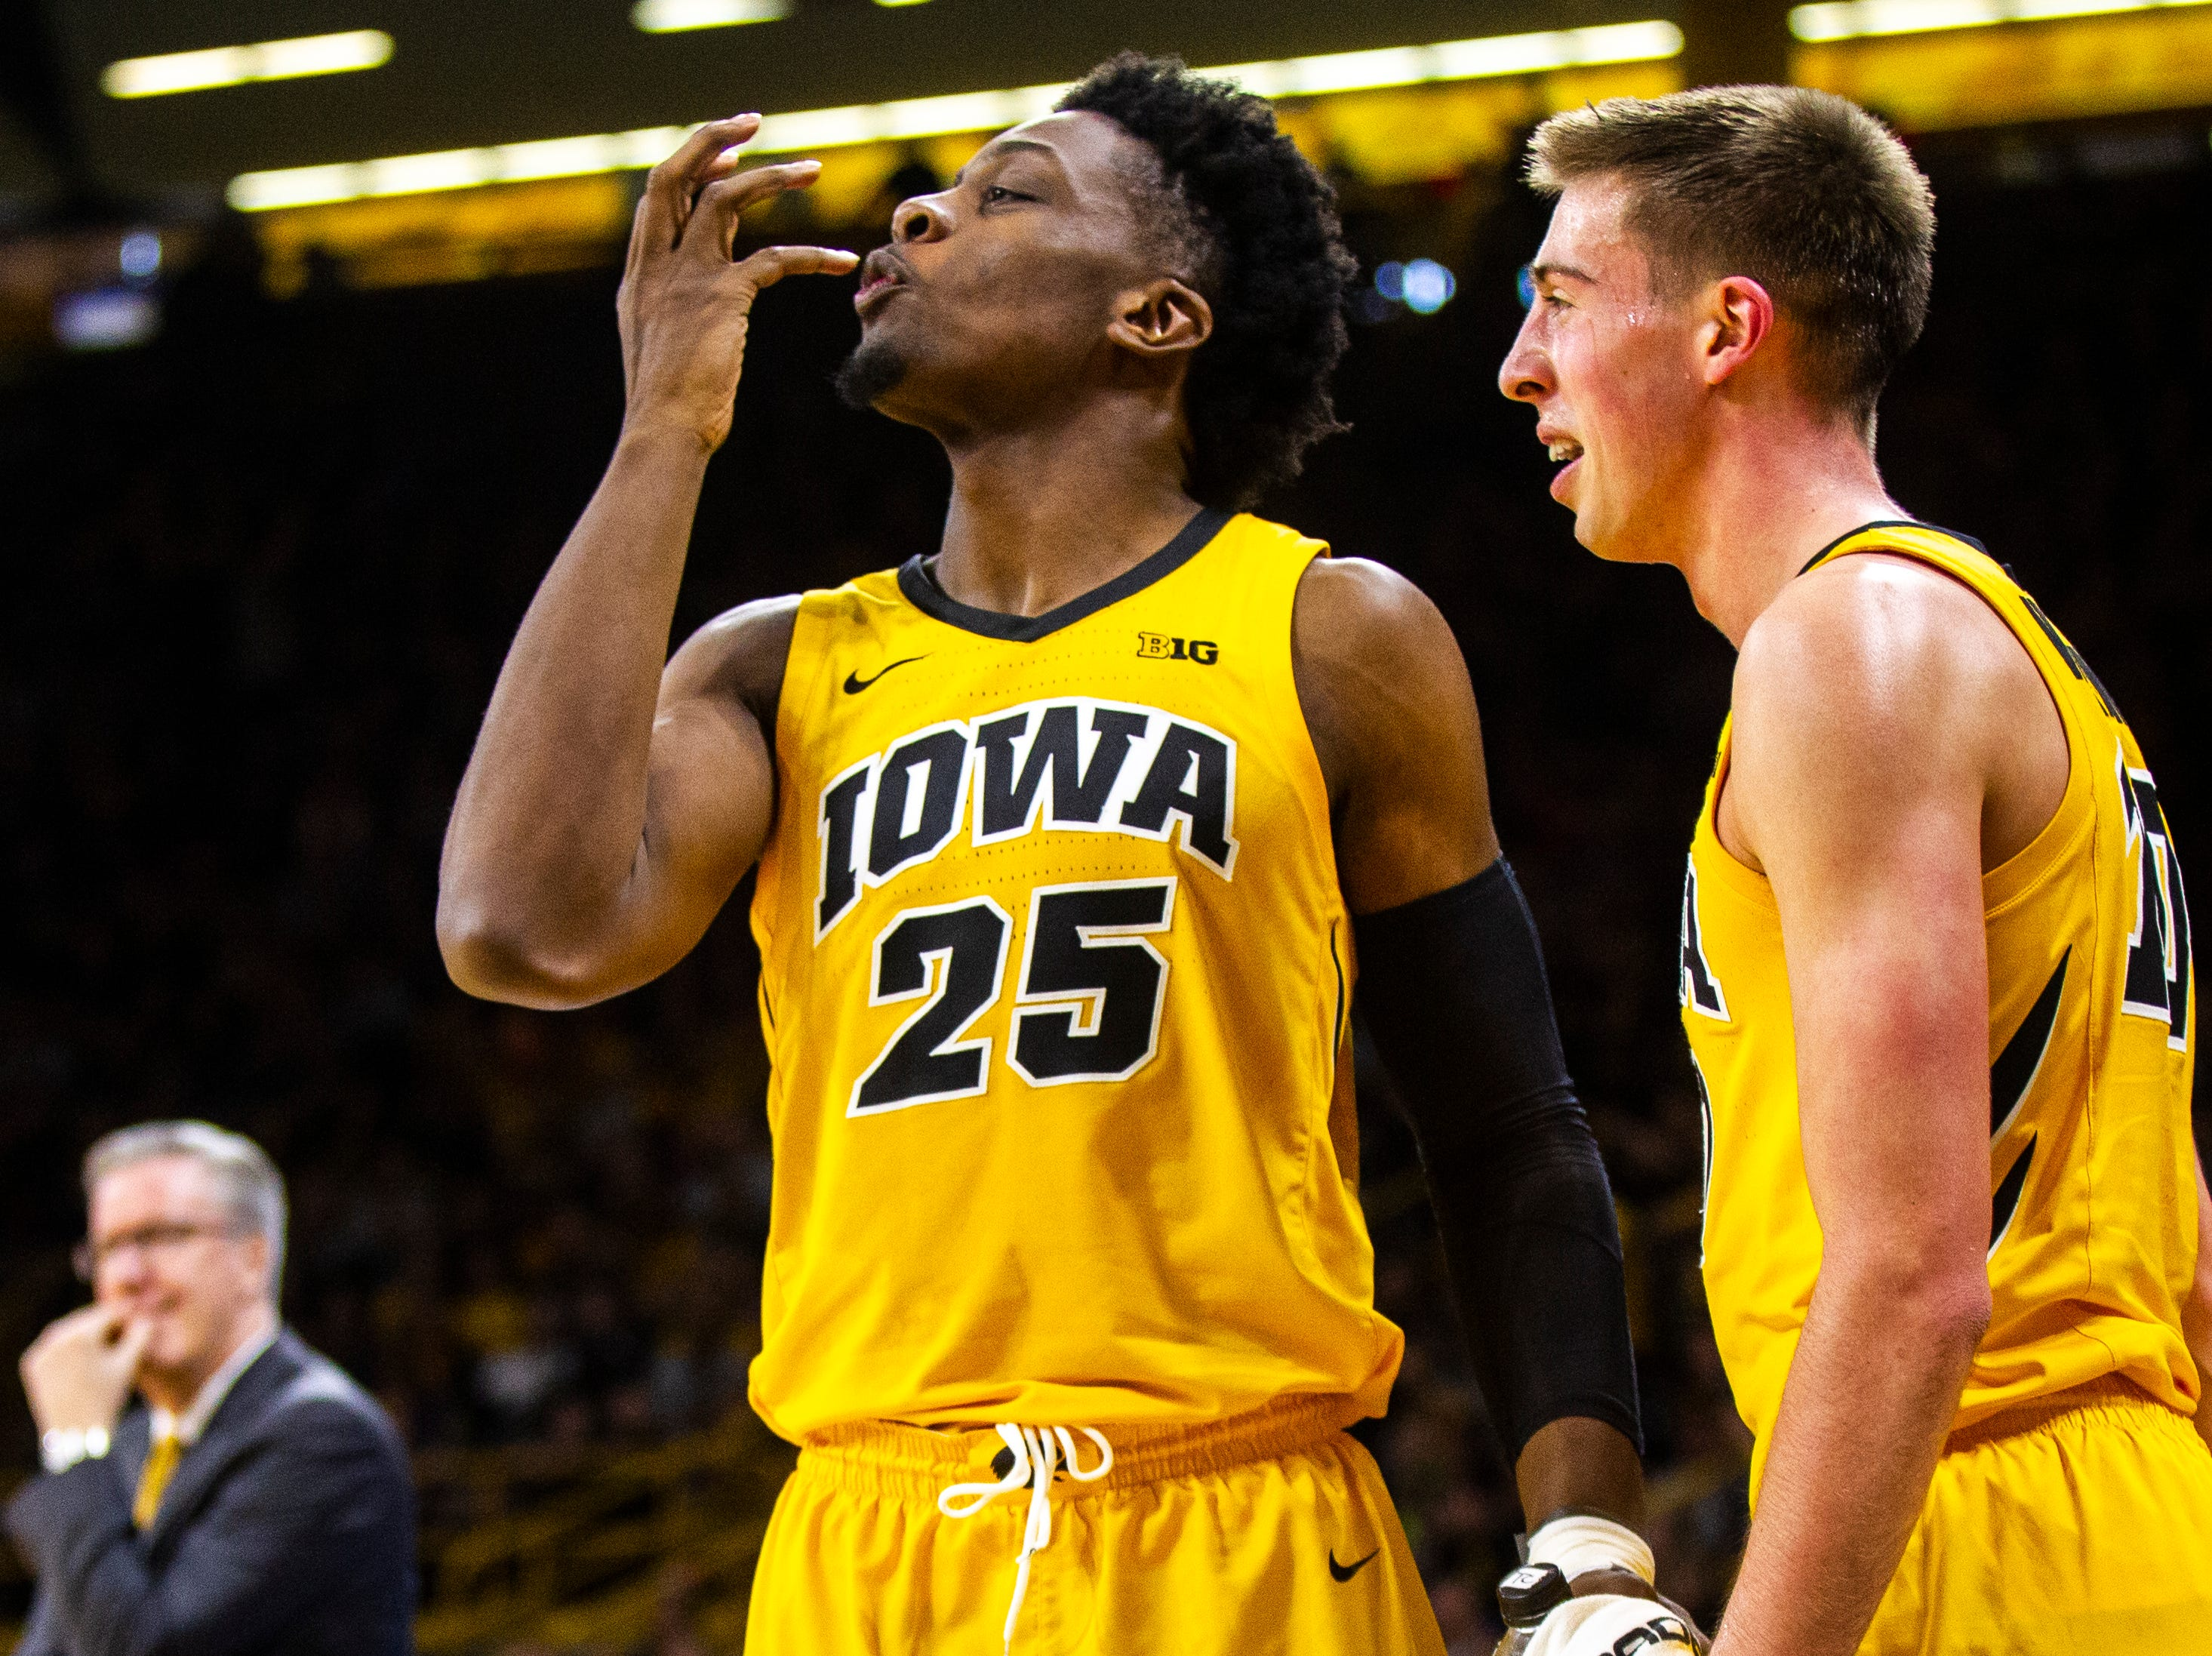 Iowa forward Tyler Cook (25) celebrates on the bench with Iowa guard Joe Wieskamp (10) during a NCAA men's basketball game on Saturday, Dec. 22, 2018, at Carver-Hawkeye Arena in Iowa City.